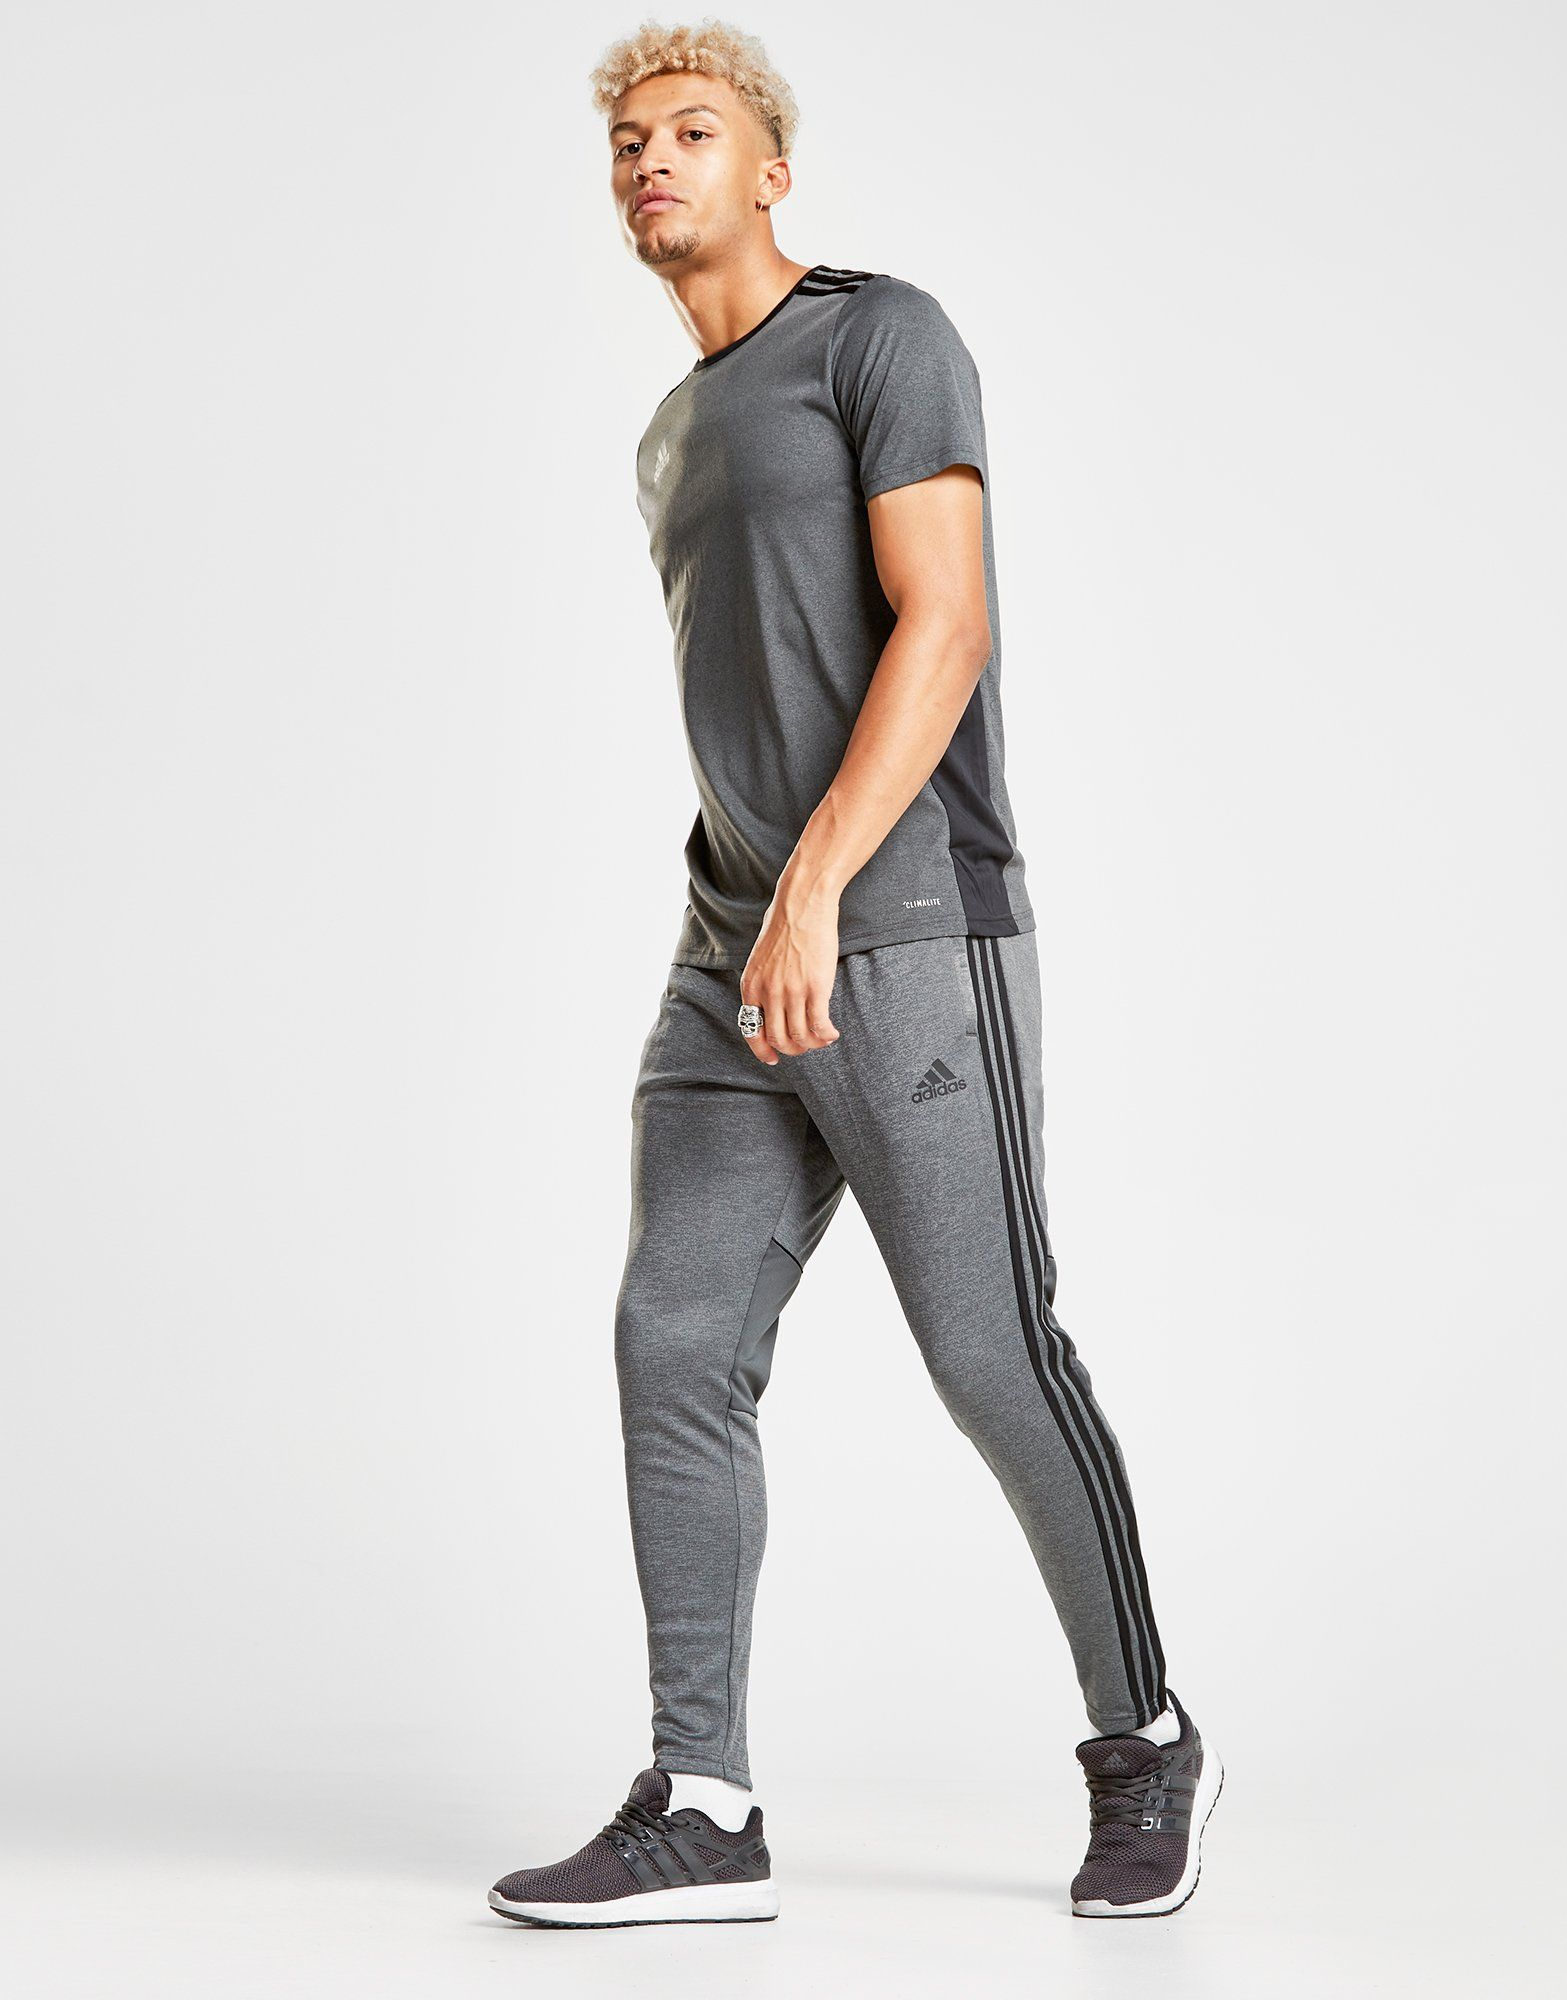 adidas T-shirt Manches Courtes Homme